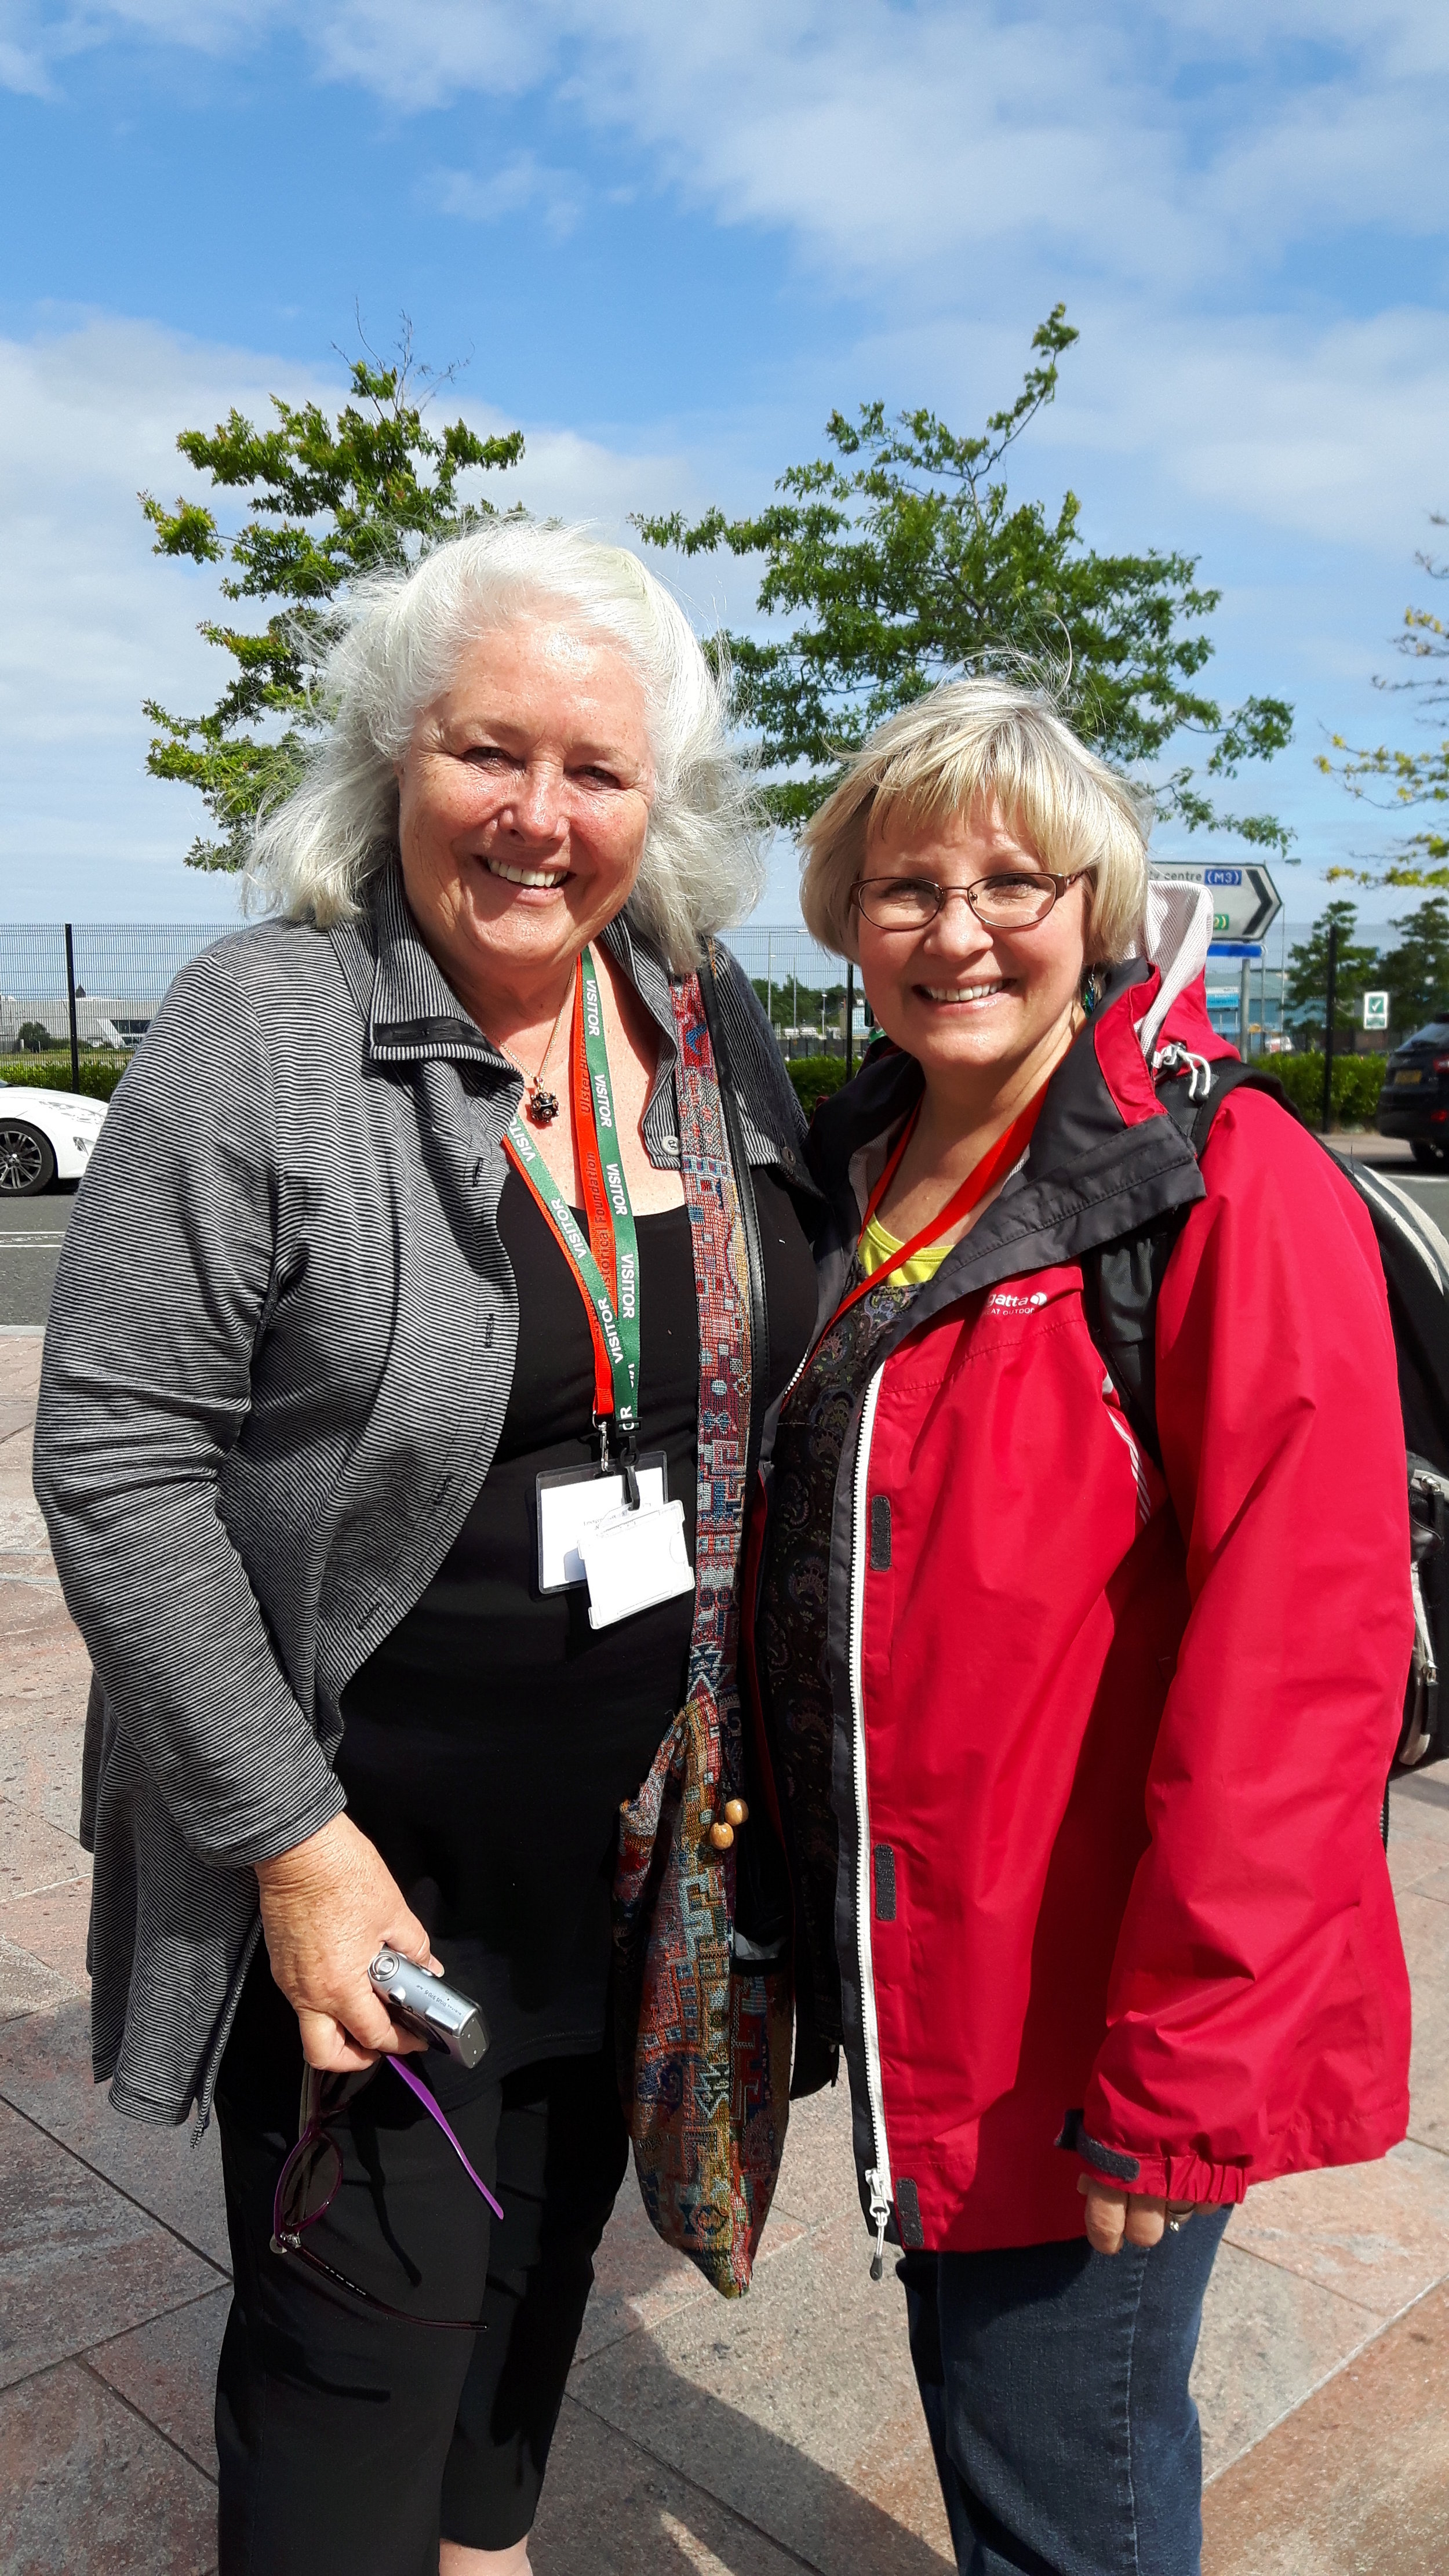 Mary-Ann Cohn (Australia) and Melanie McLennan (Canada) who discovered they were long lost cousins through meeting at our family history conference in 2016.